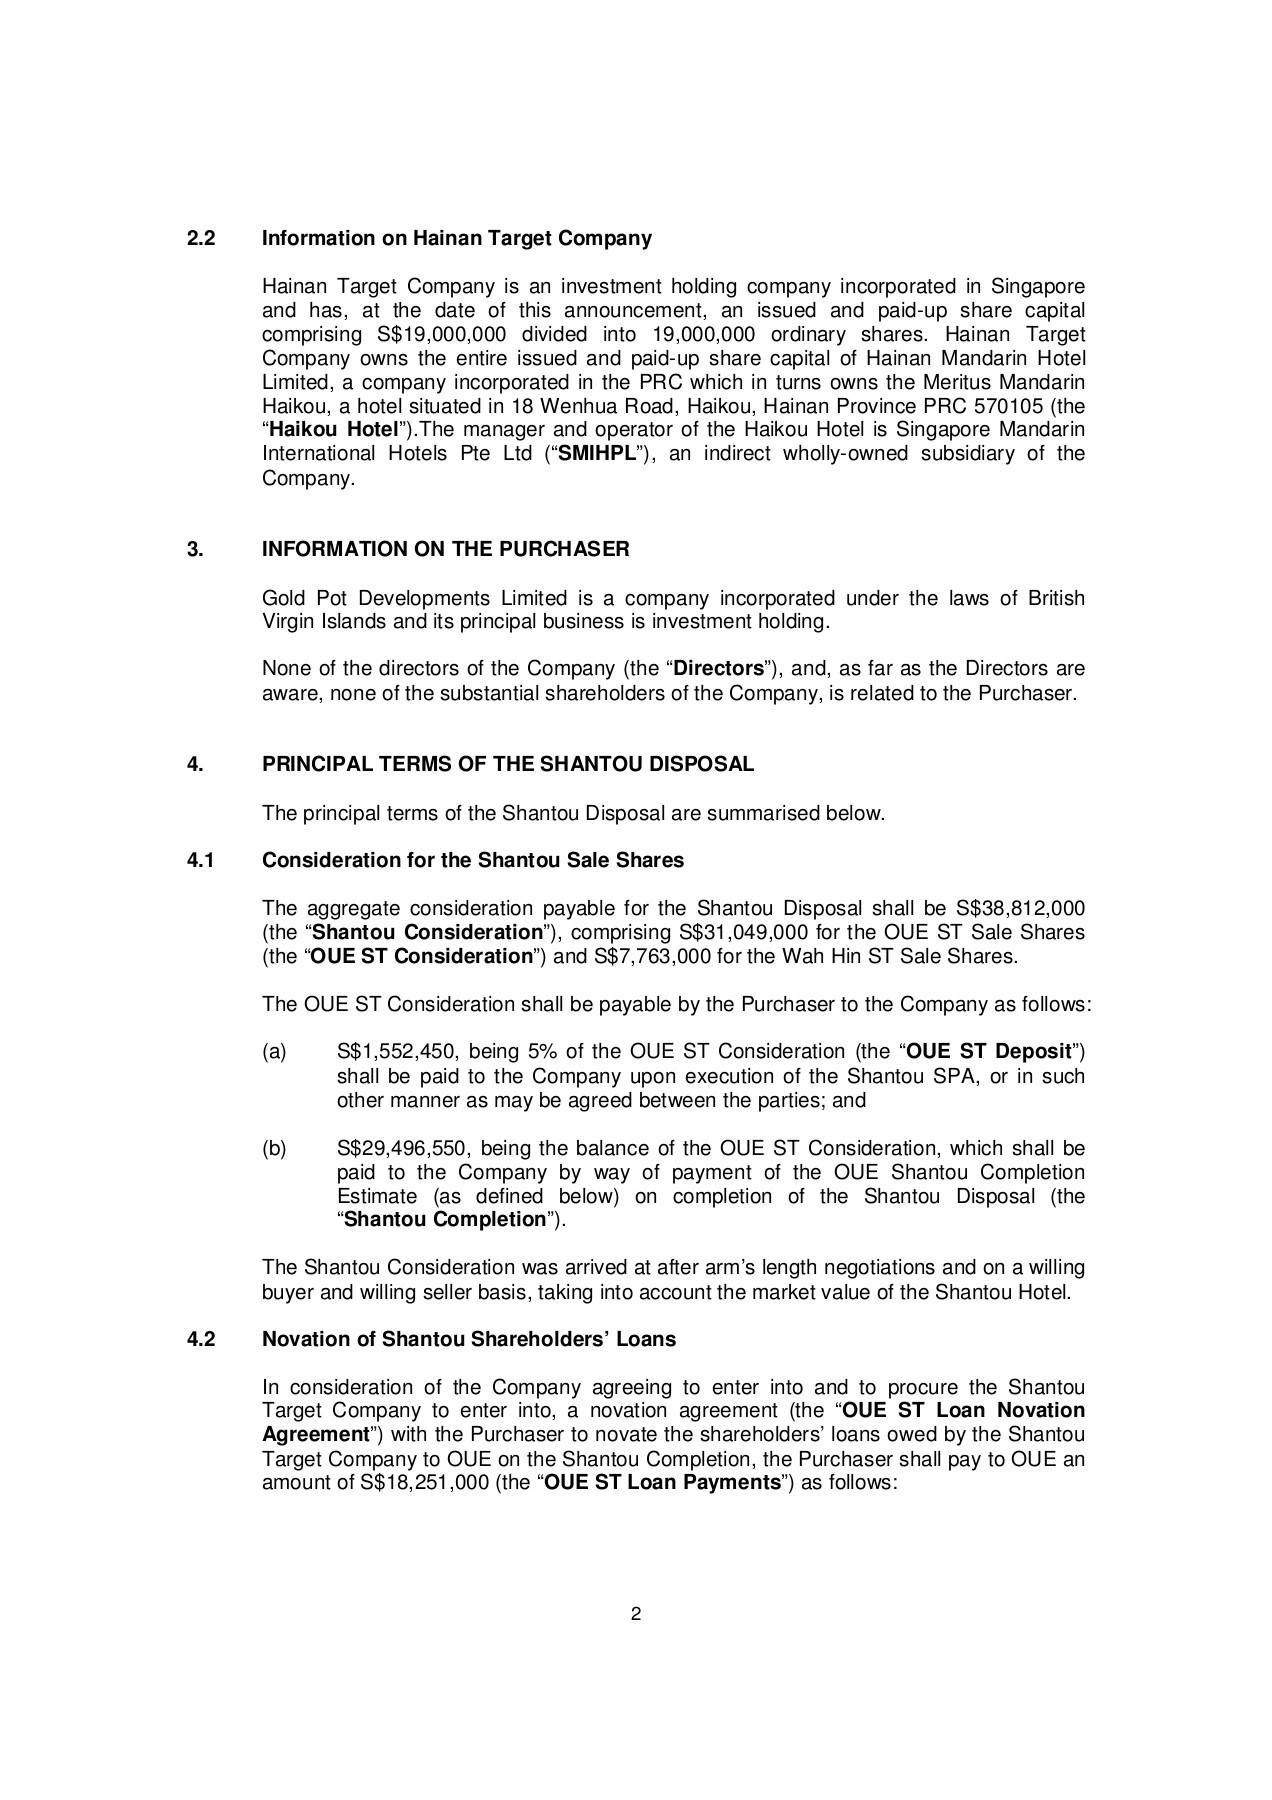 Loan Novation Agreement Project Coast Announcement On Proposed Disposals Draft 7 Pages